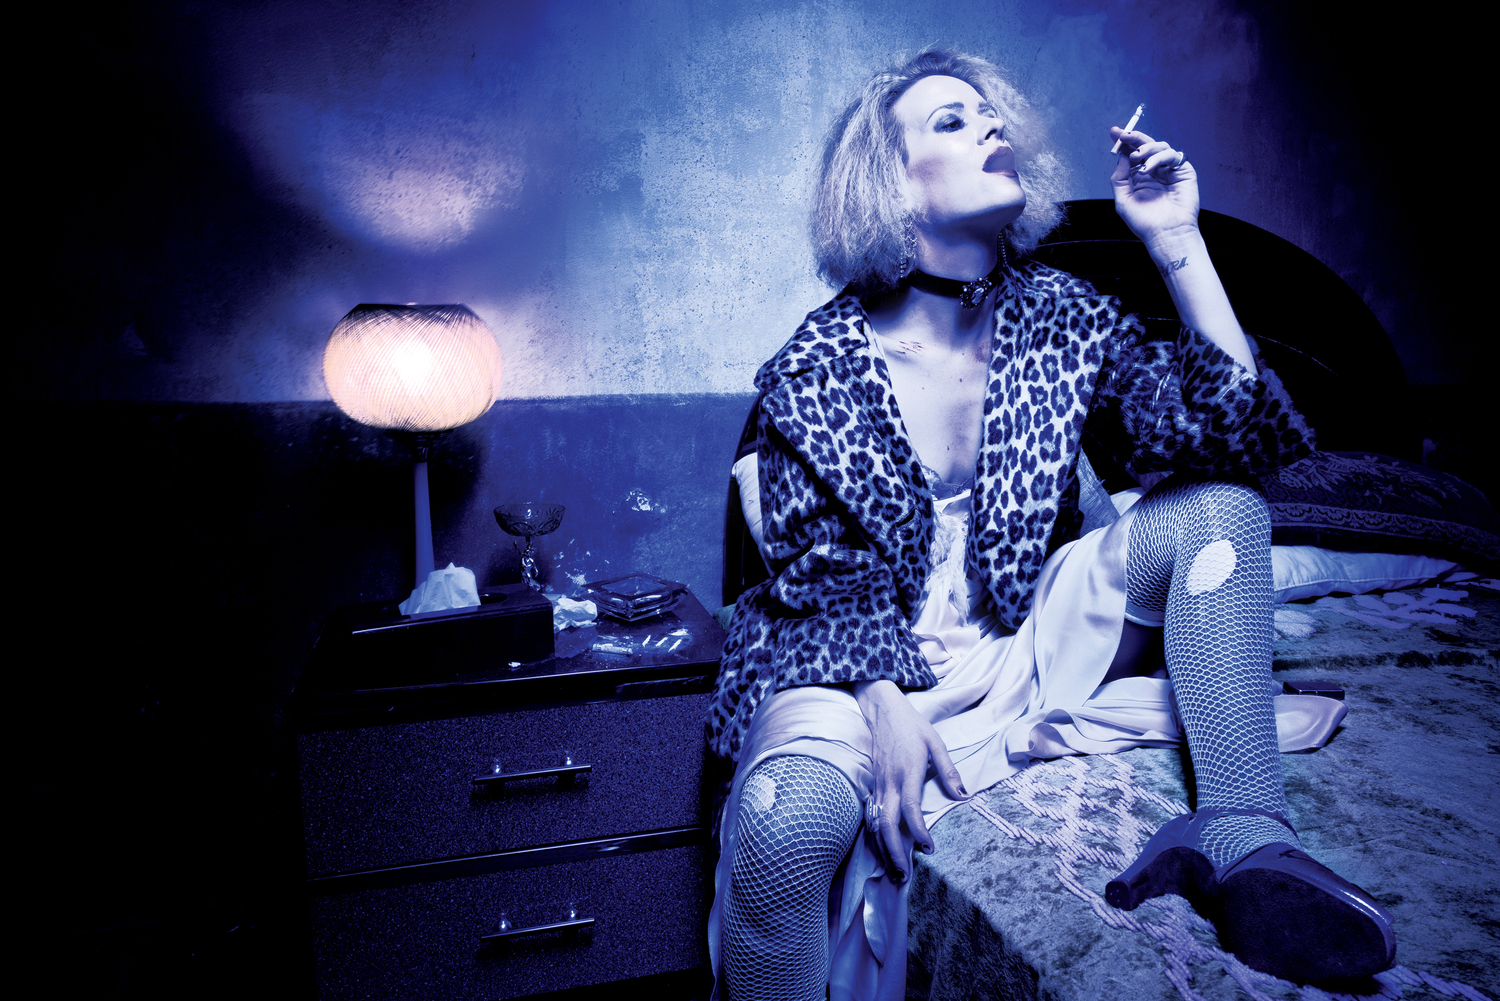 AMERICAN HORROR STORY: HOTEL -- Pictured: Sarah Paulson as Sally. CR: Frank Ockenfels/FX